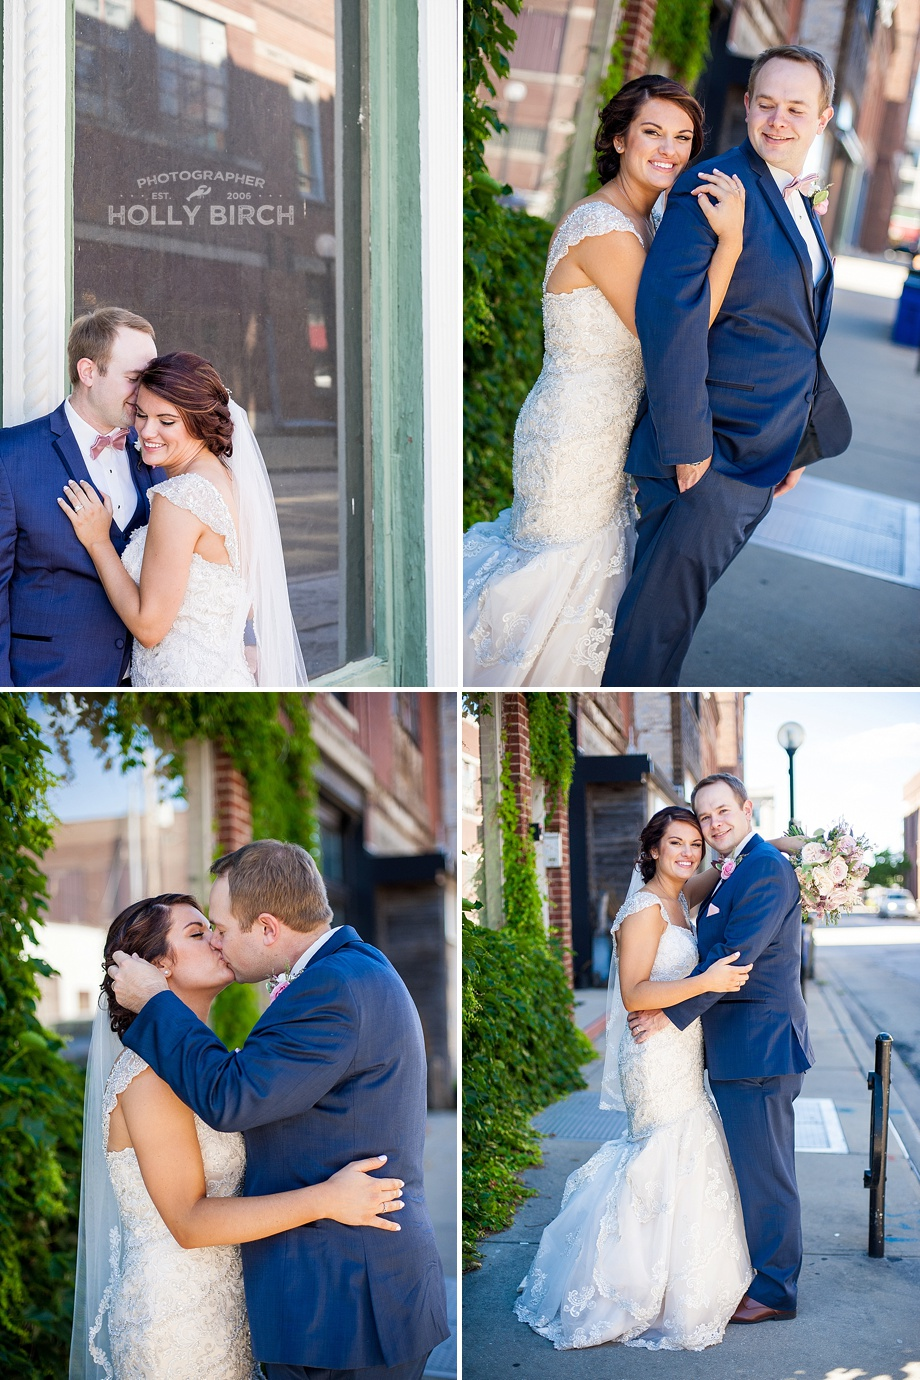 new husband and wife photos